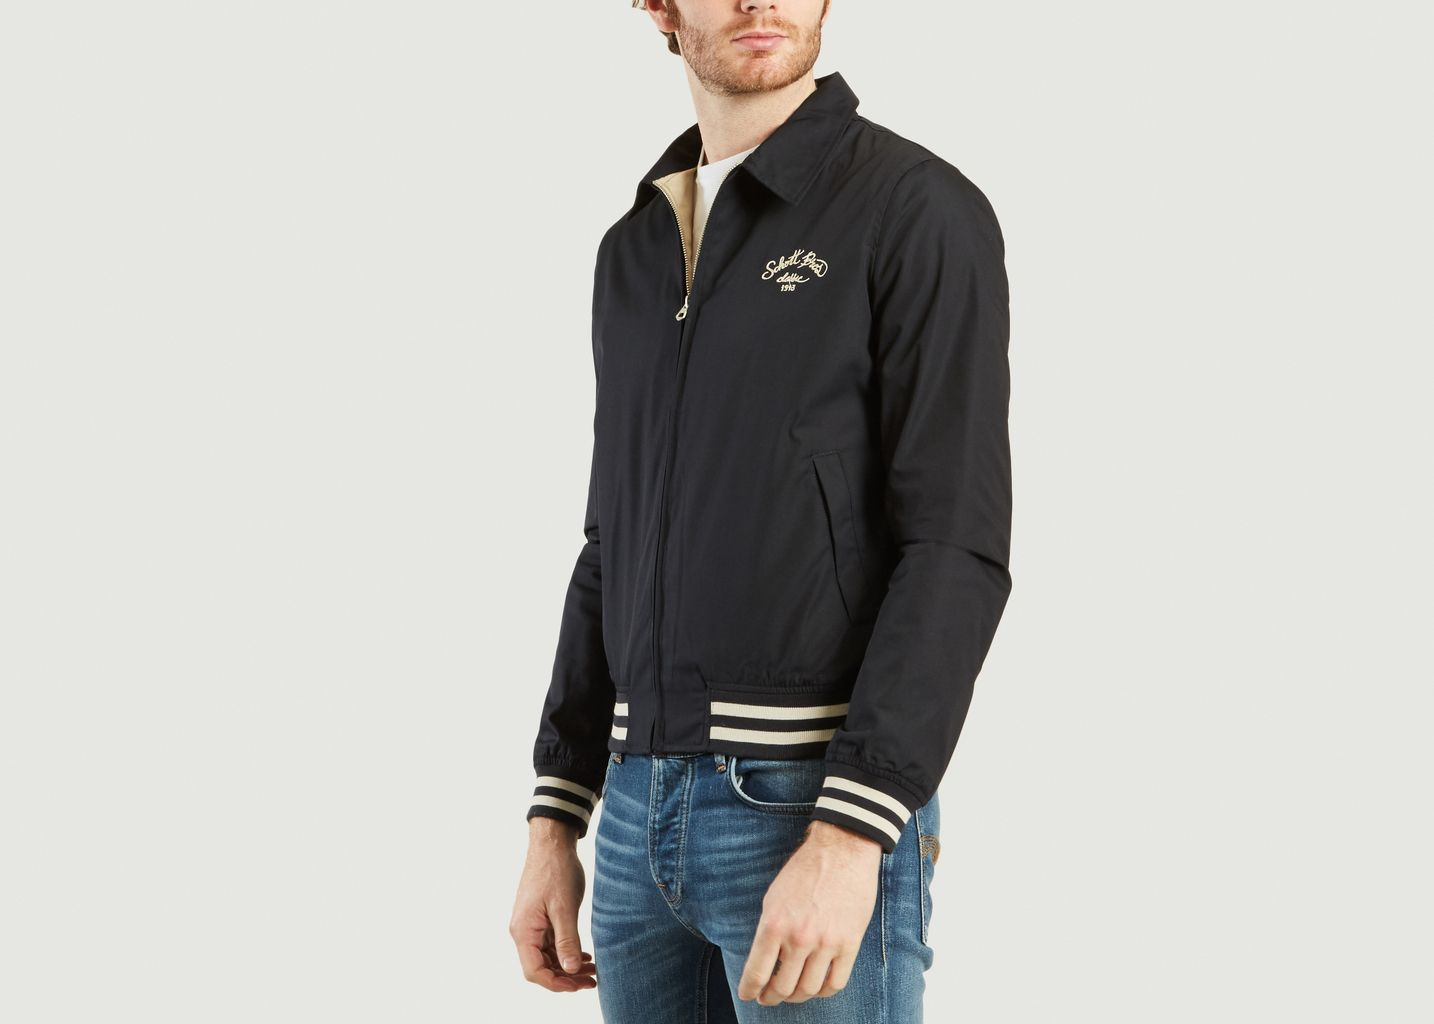 purchase cheap 92aa0 2b0cb 11486867716-06NY-schott-nyc-blousonrtro-01-zoom.jpg